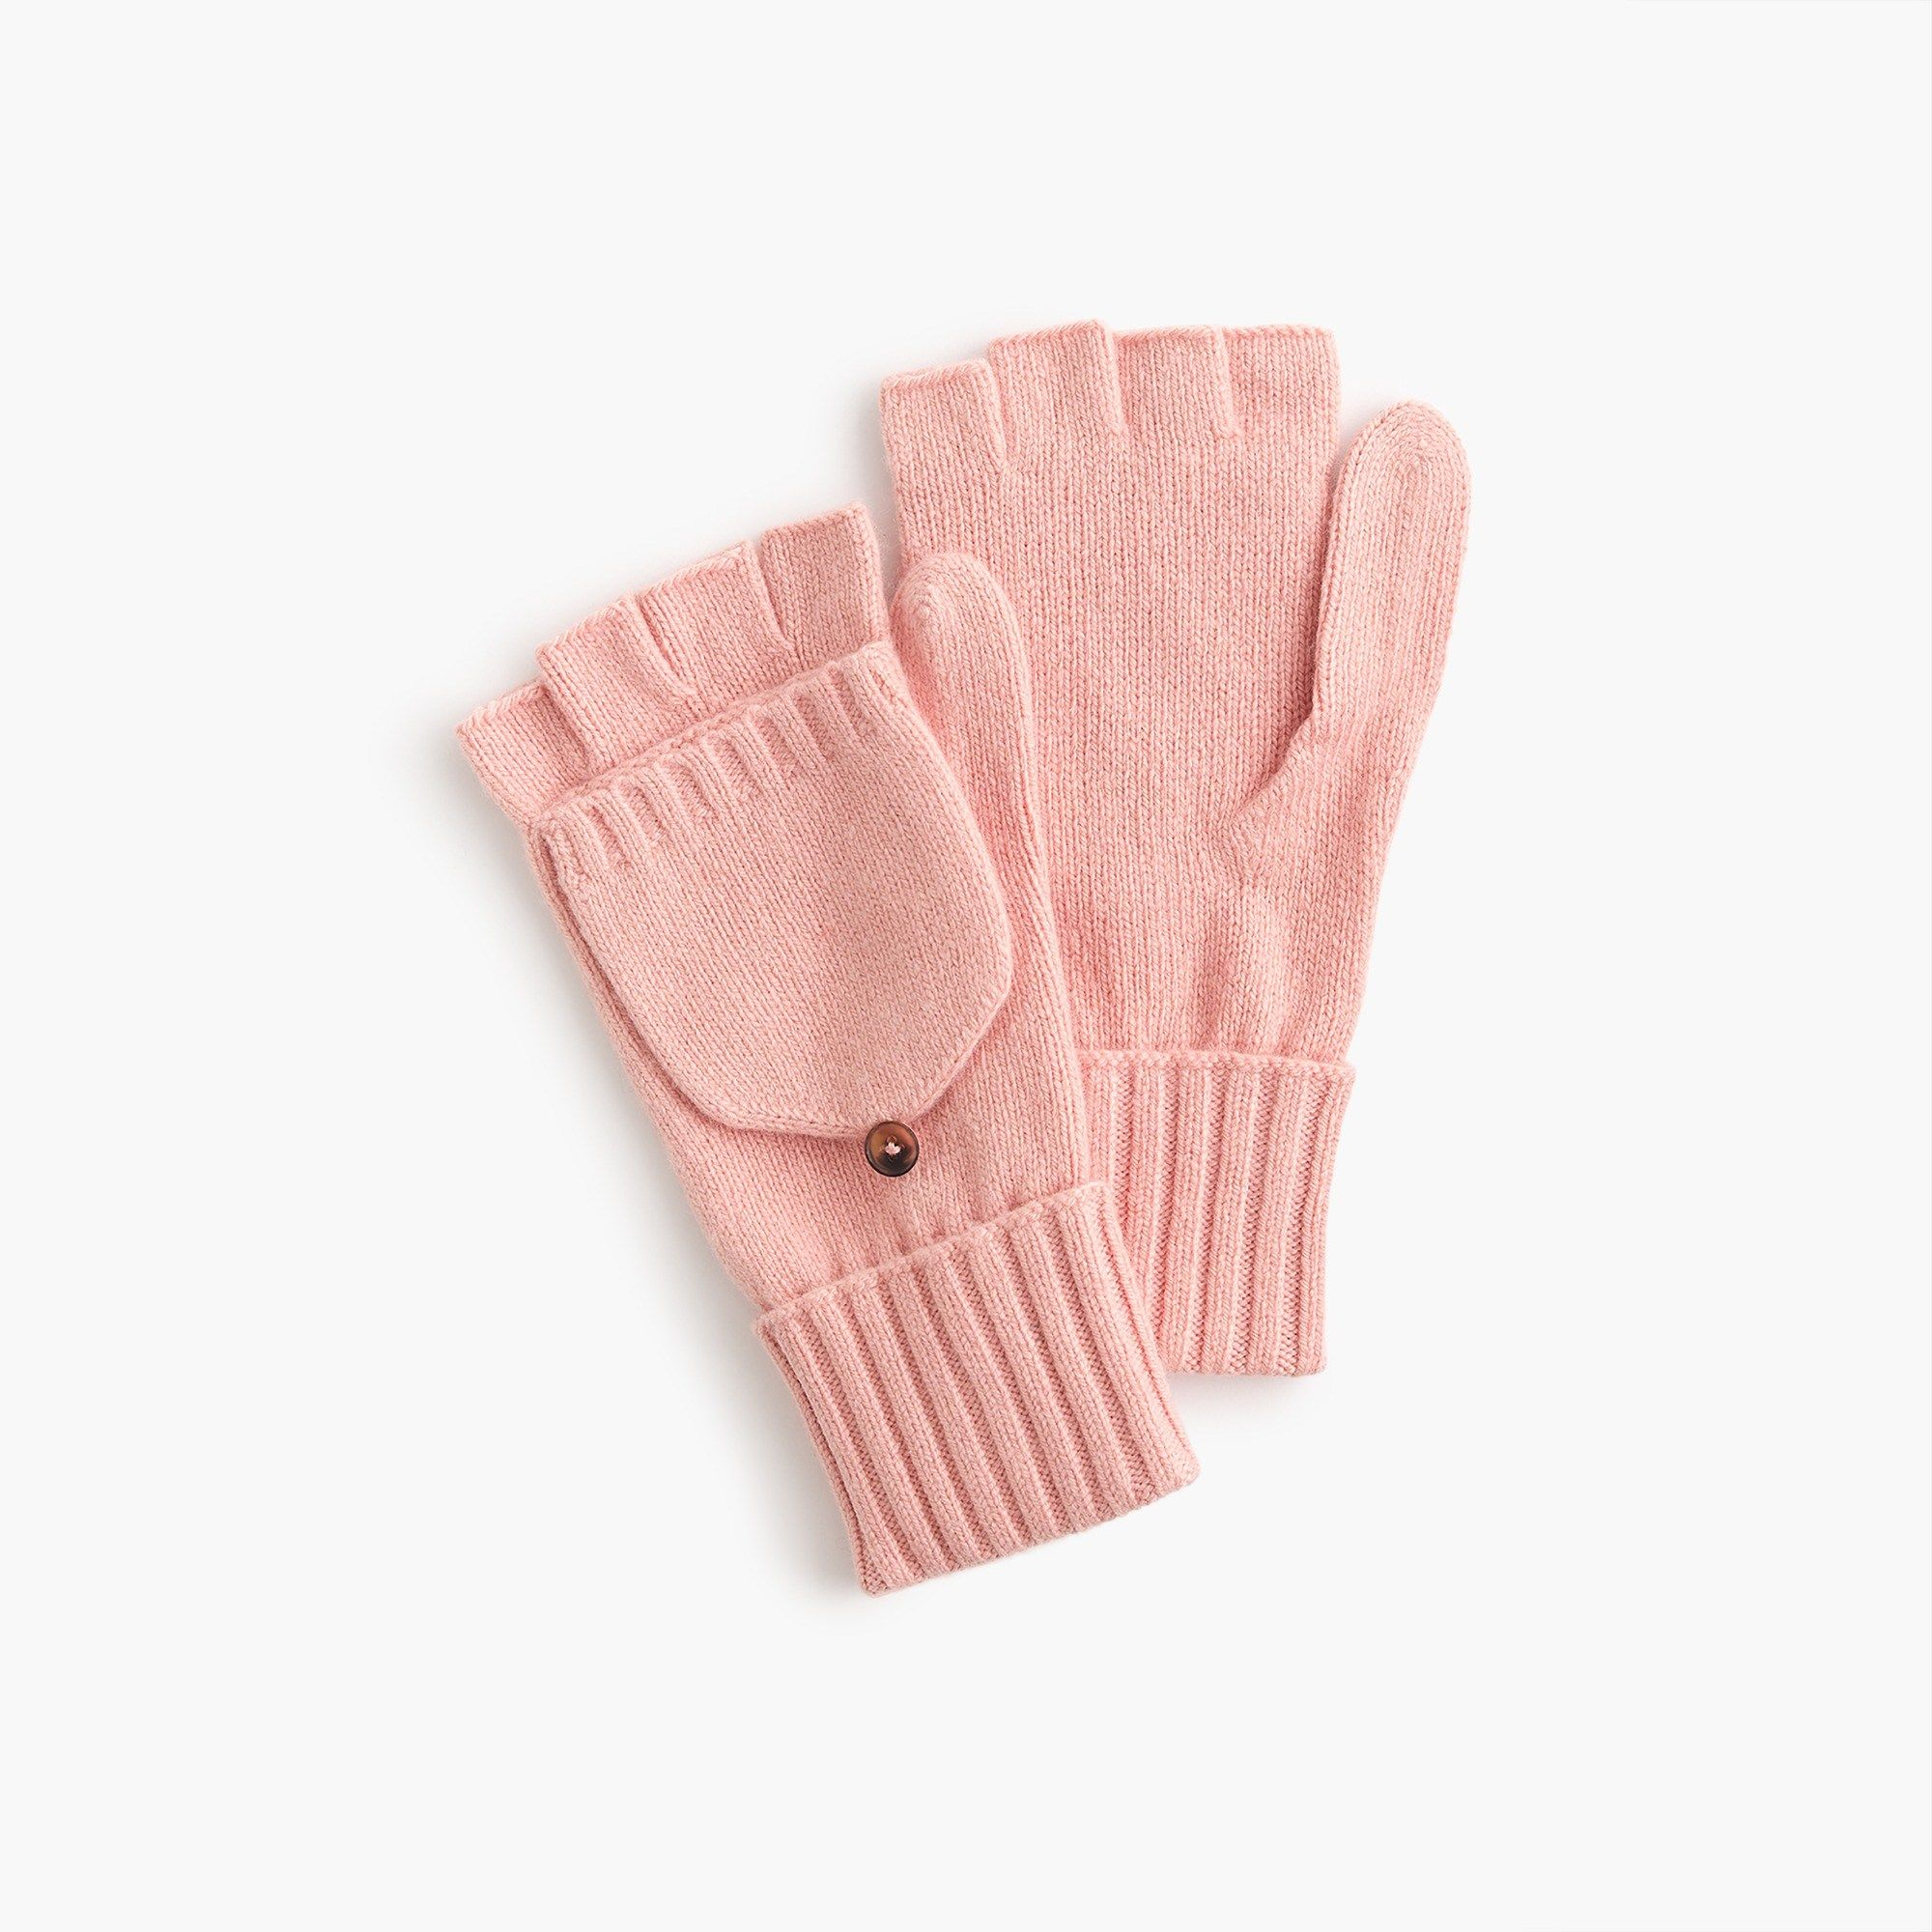 fcd5888e246 Love these cute pink mittens!